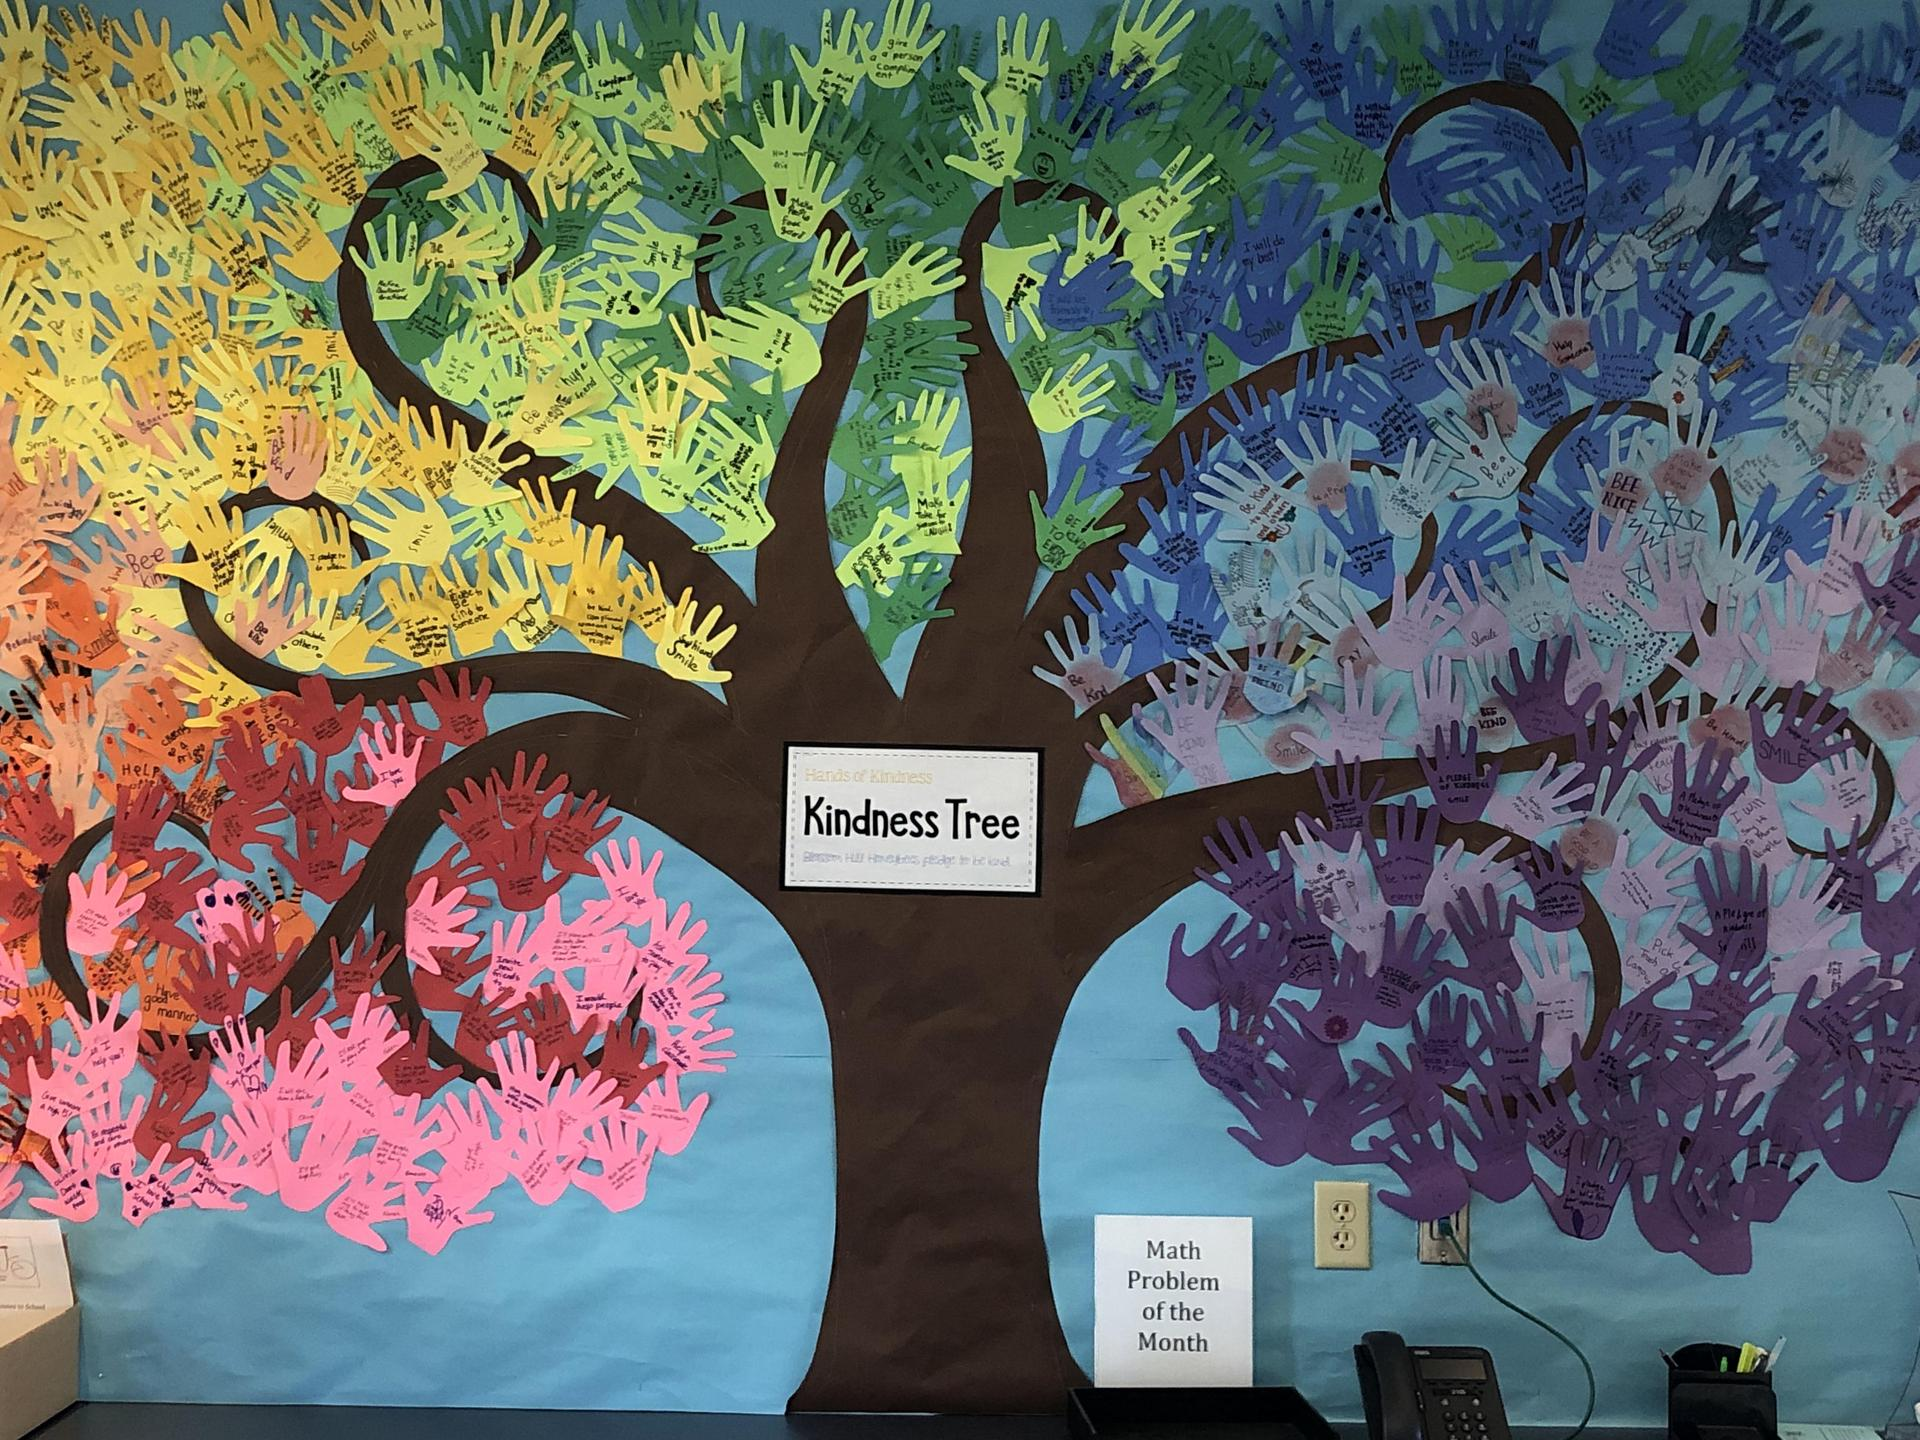 Kindness tree picture